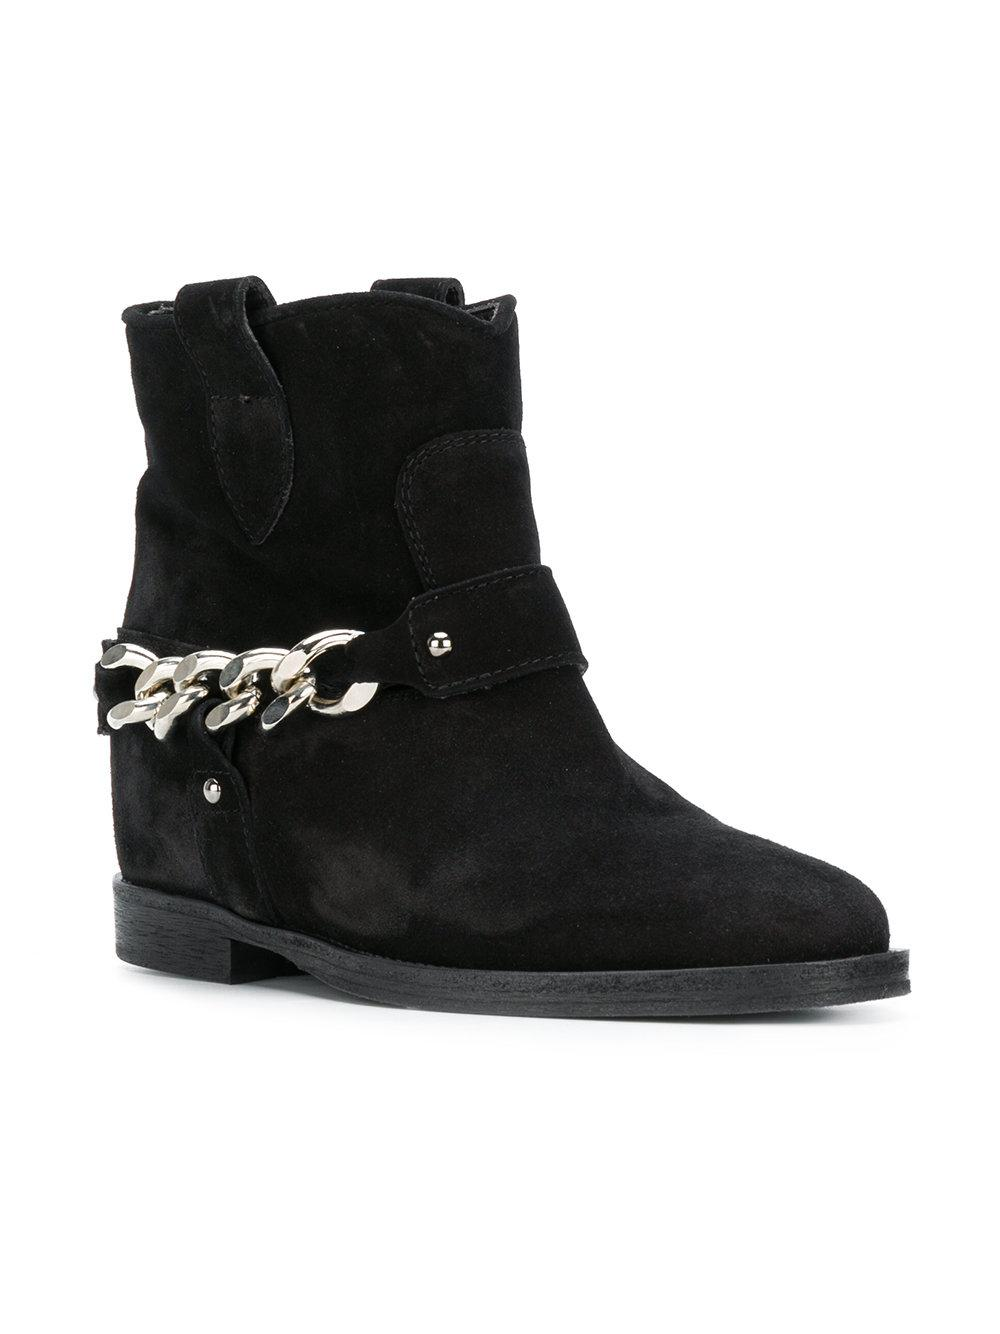 Via Roma 15 Leather Chain Embellished Ankle Boots in Black